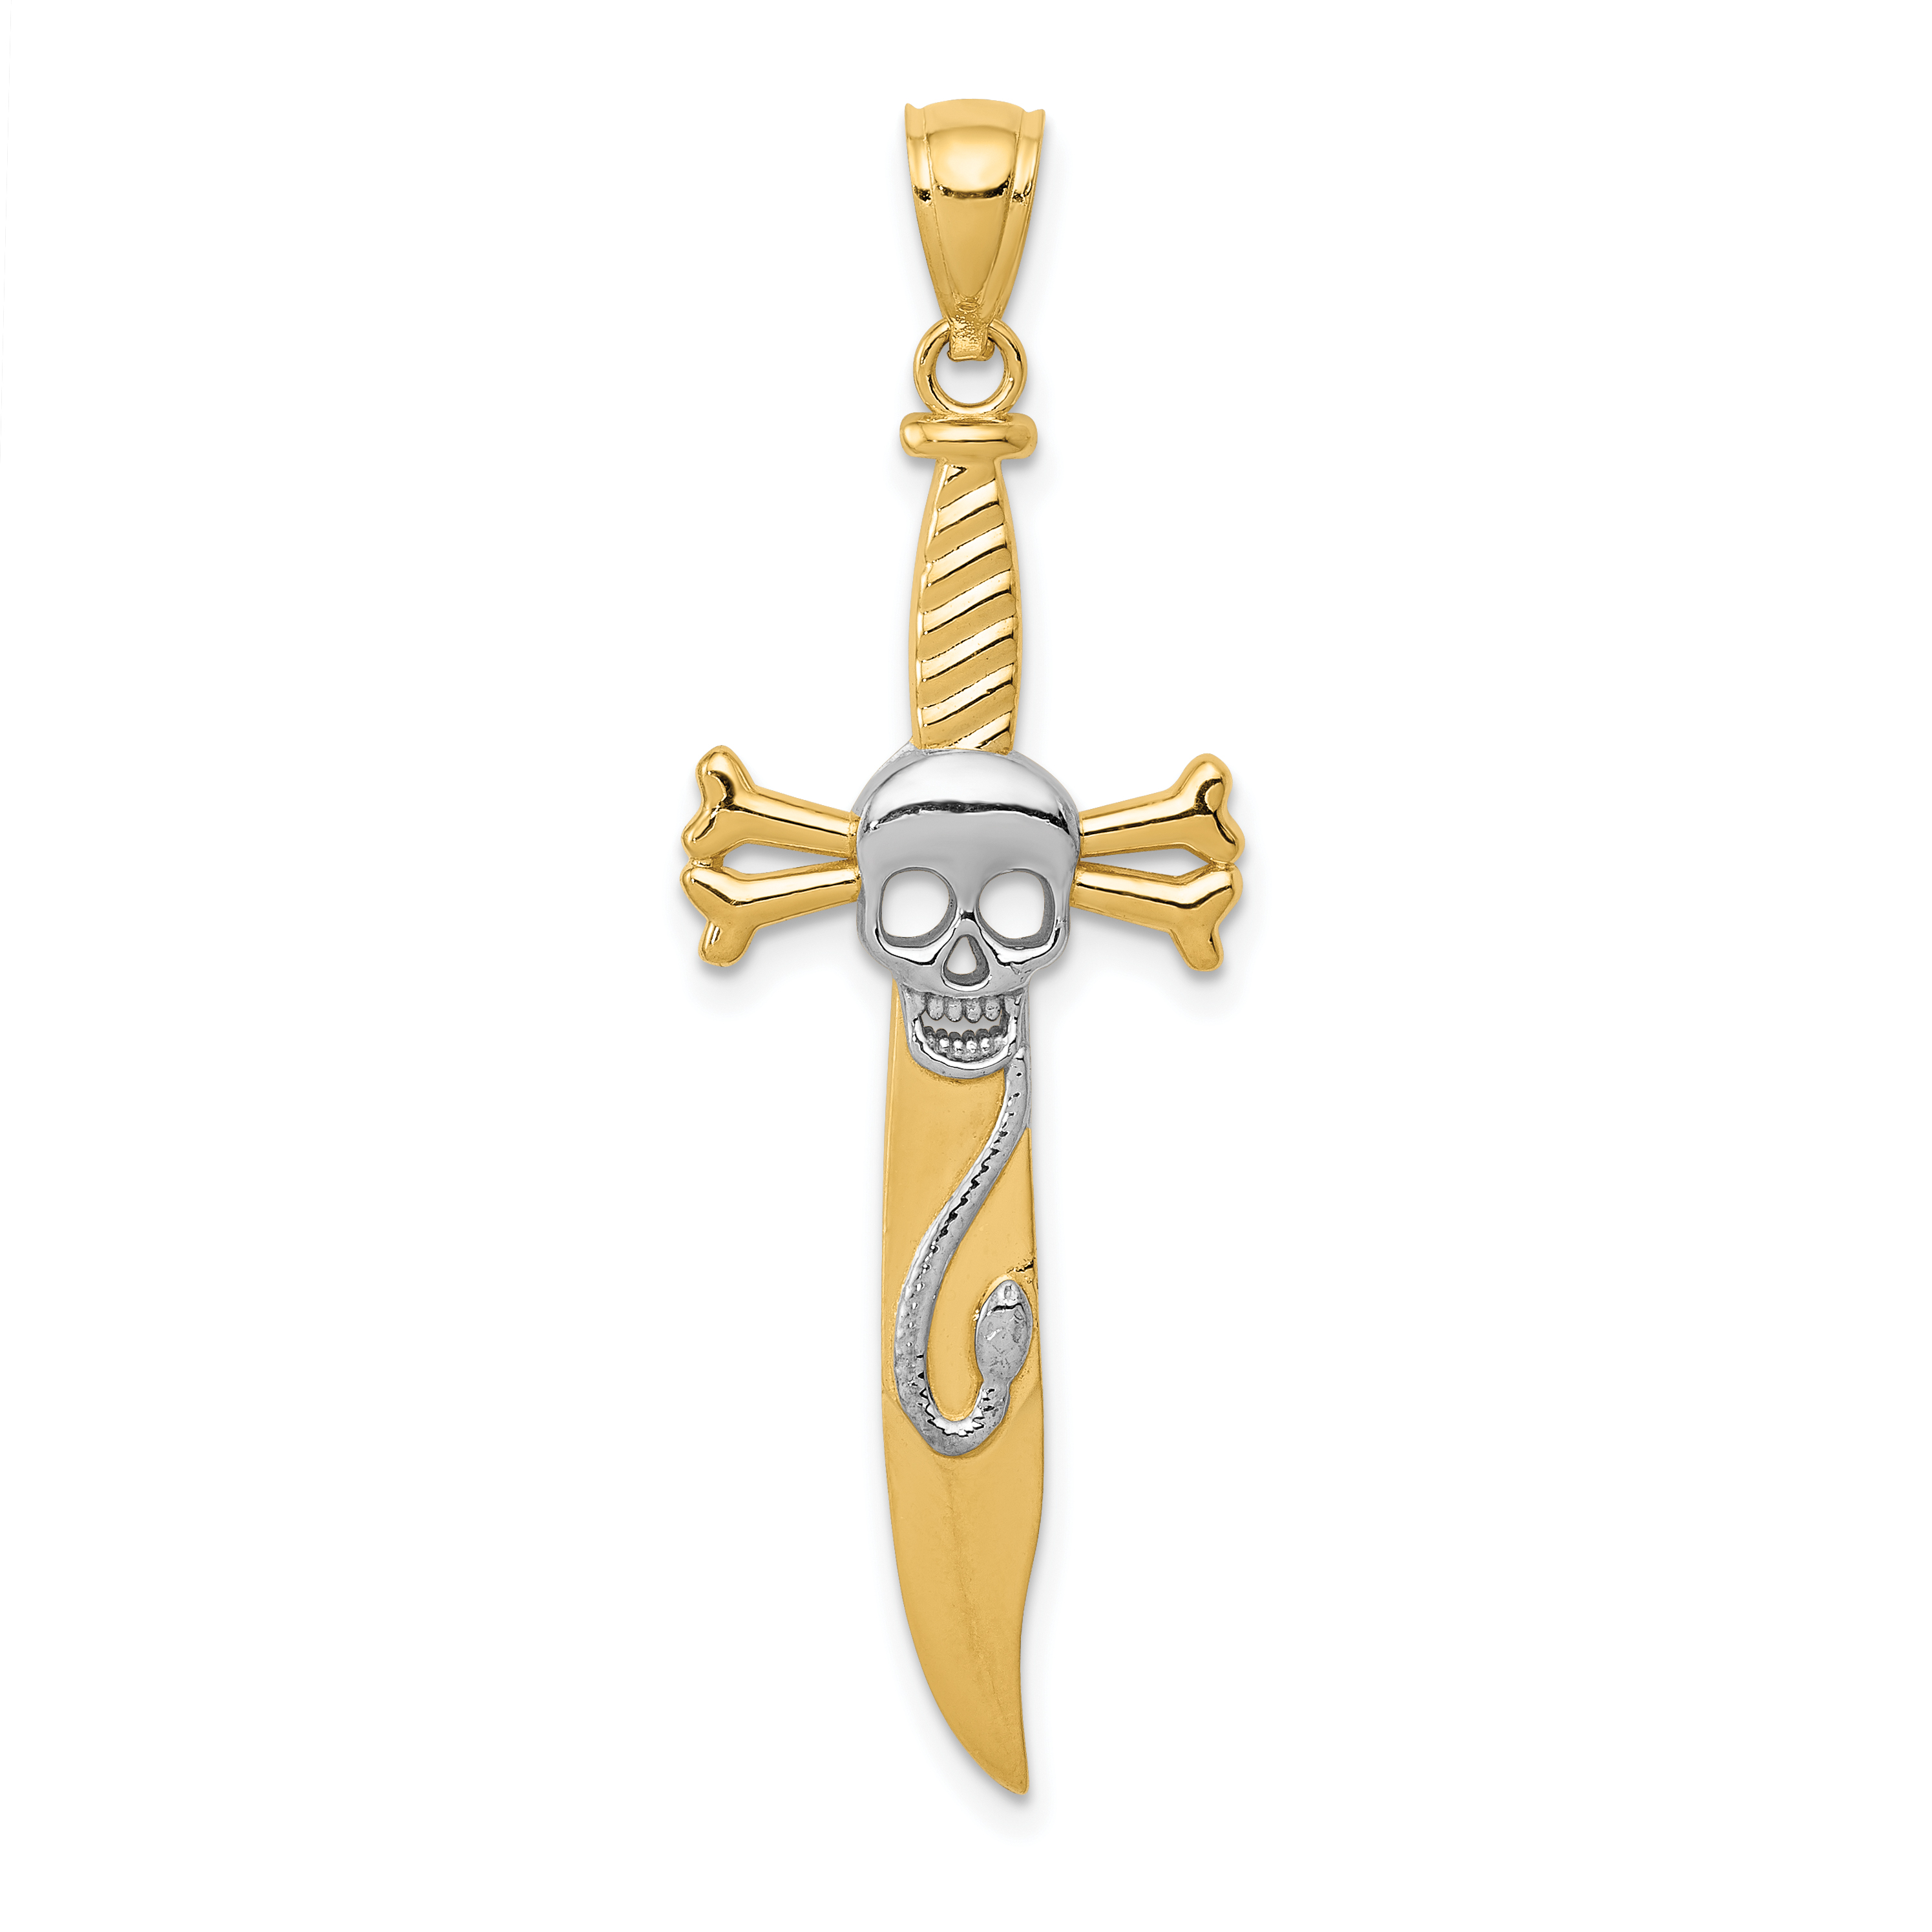 14k Yellow Gold Skull Sword Pendant Charm Necklace Dagger Dragon Man Fine Jewelry Gift For Dad Mens For Him - image 2 of 2